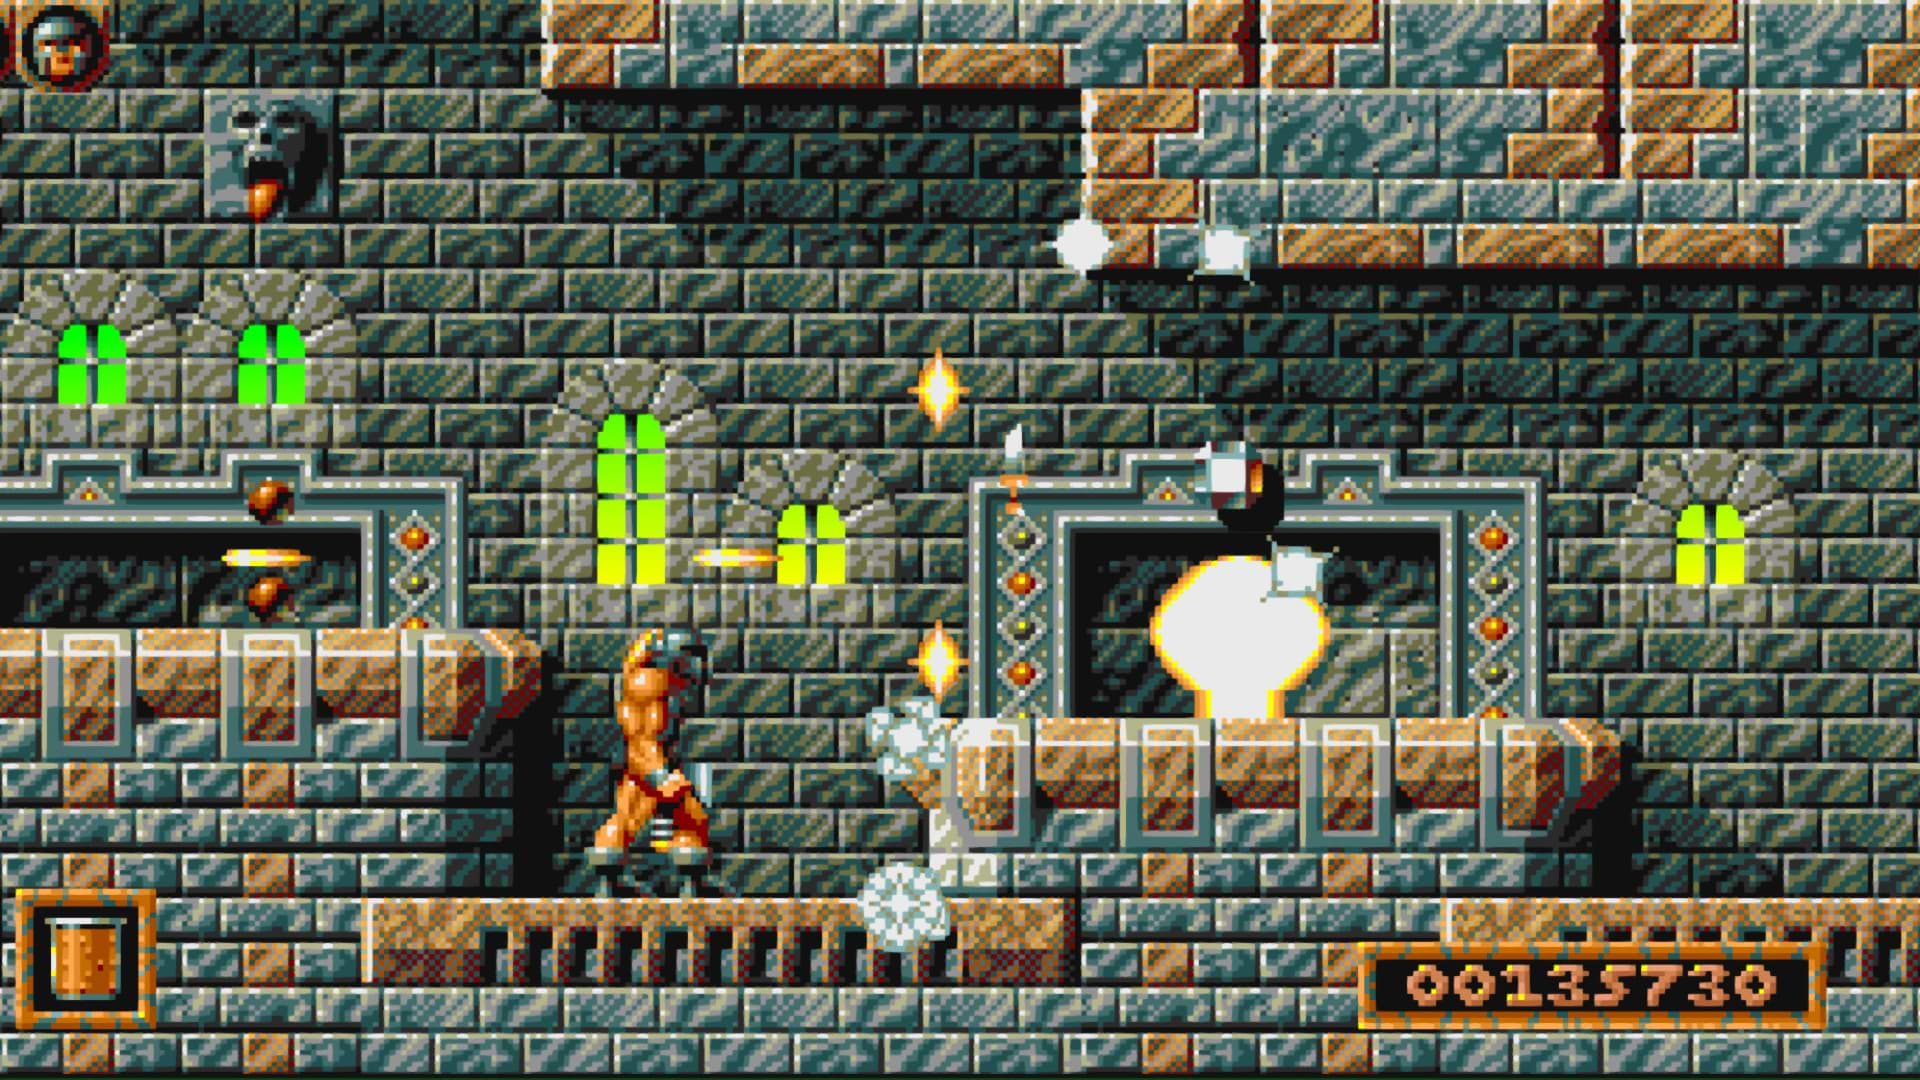 Amiga Games On The Switch